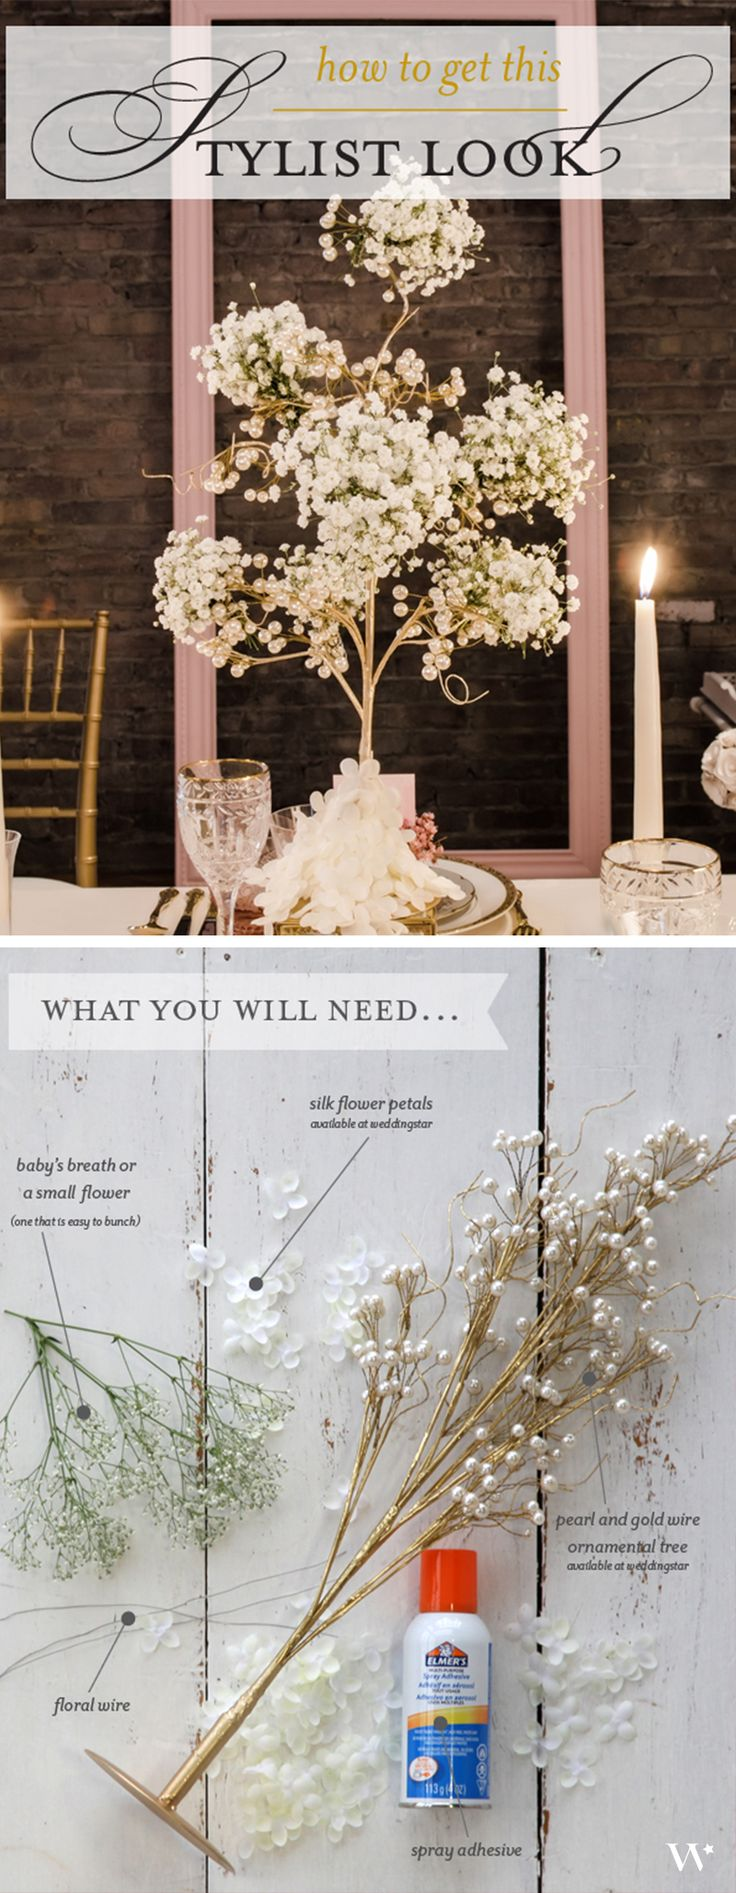 Wedding DIY: Showstopping Centerpiece! Learn how to make this gorgeous wedding centerpiece in our simple tutorial! http://blog.weddingstar.com/achieve-this-look-diy-centerpiece/